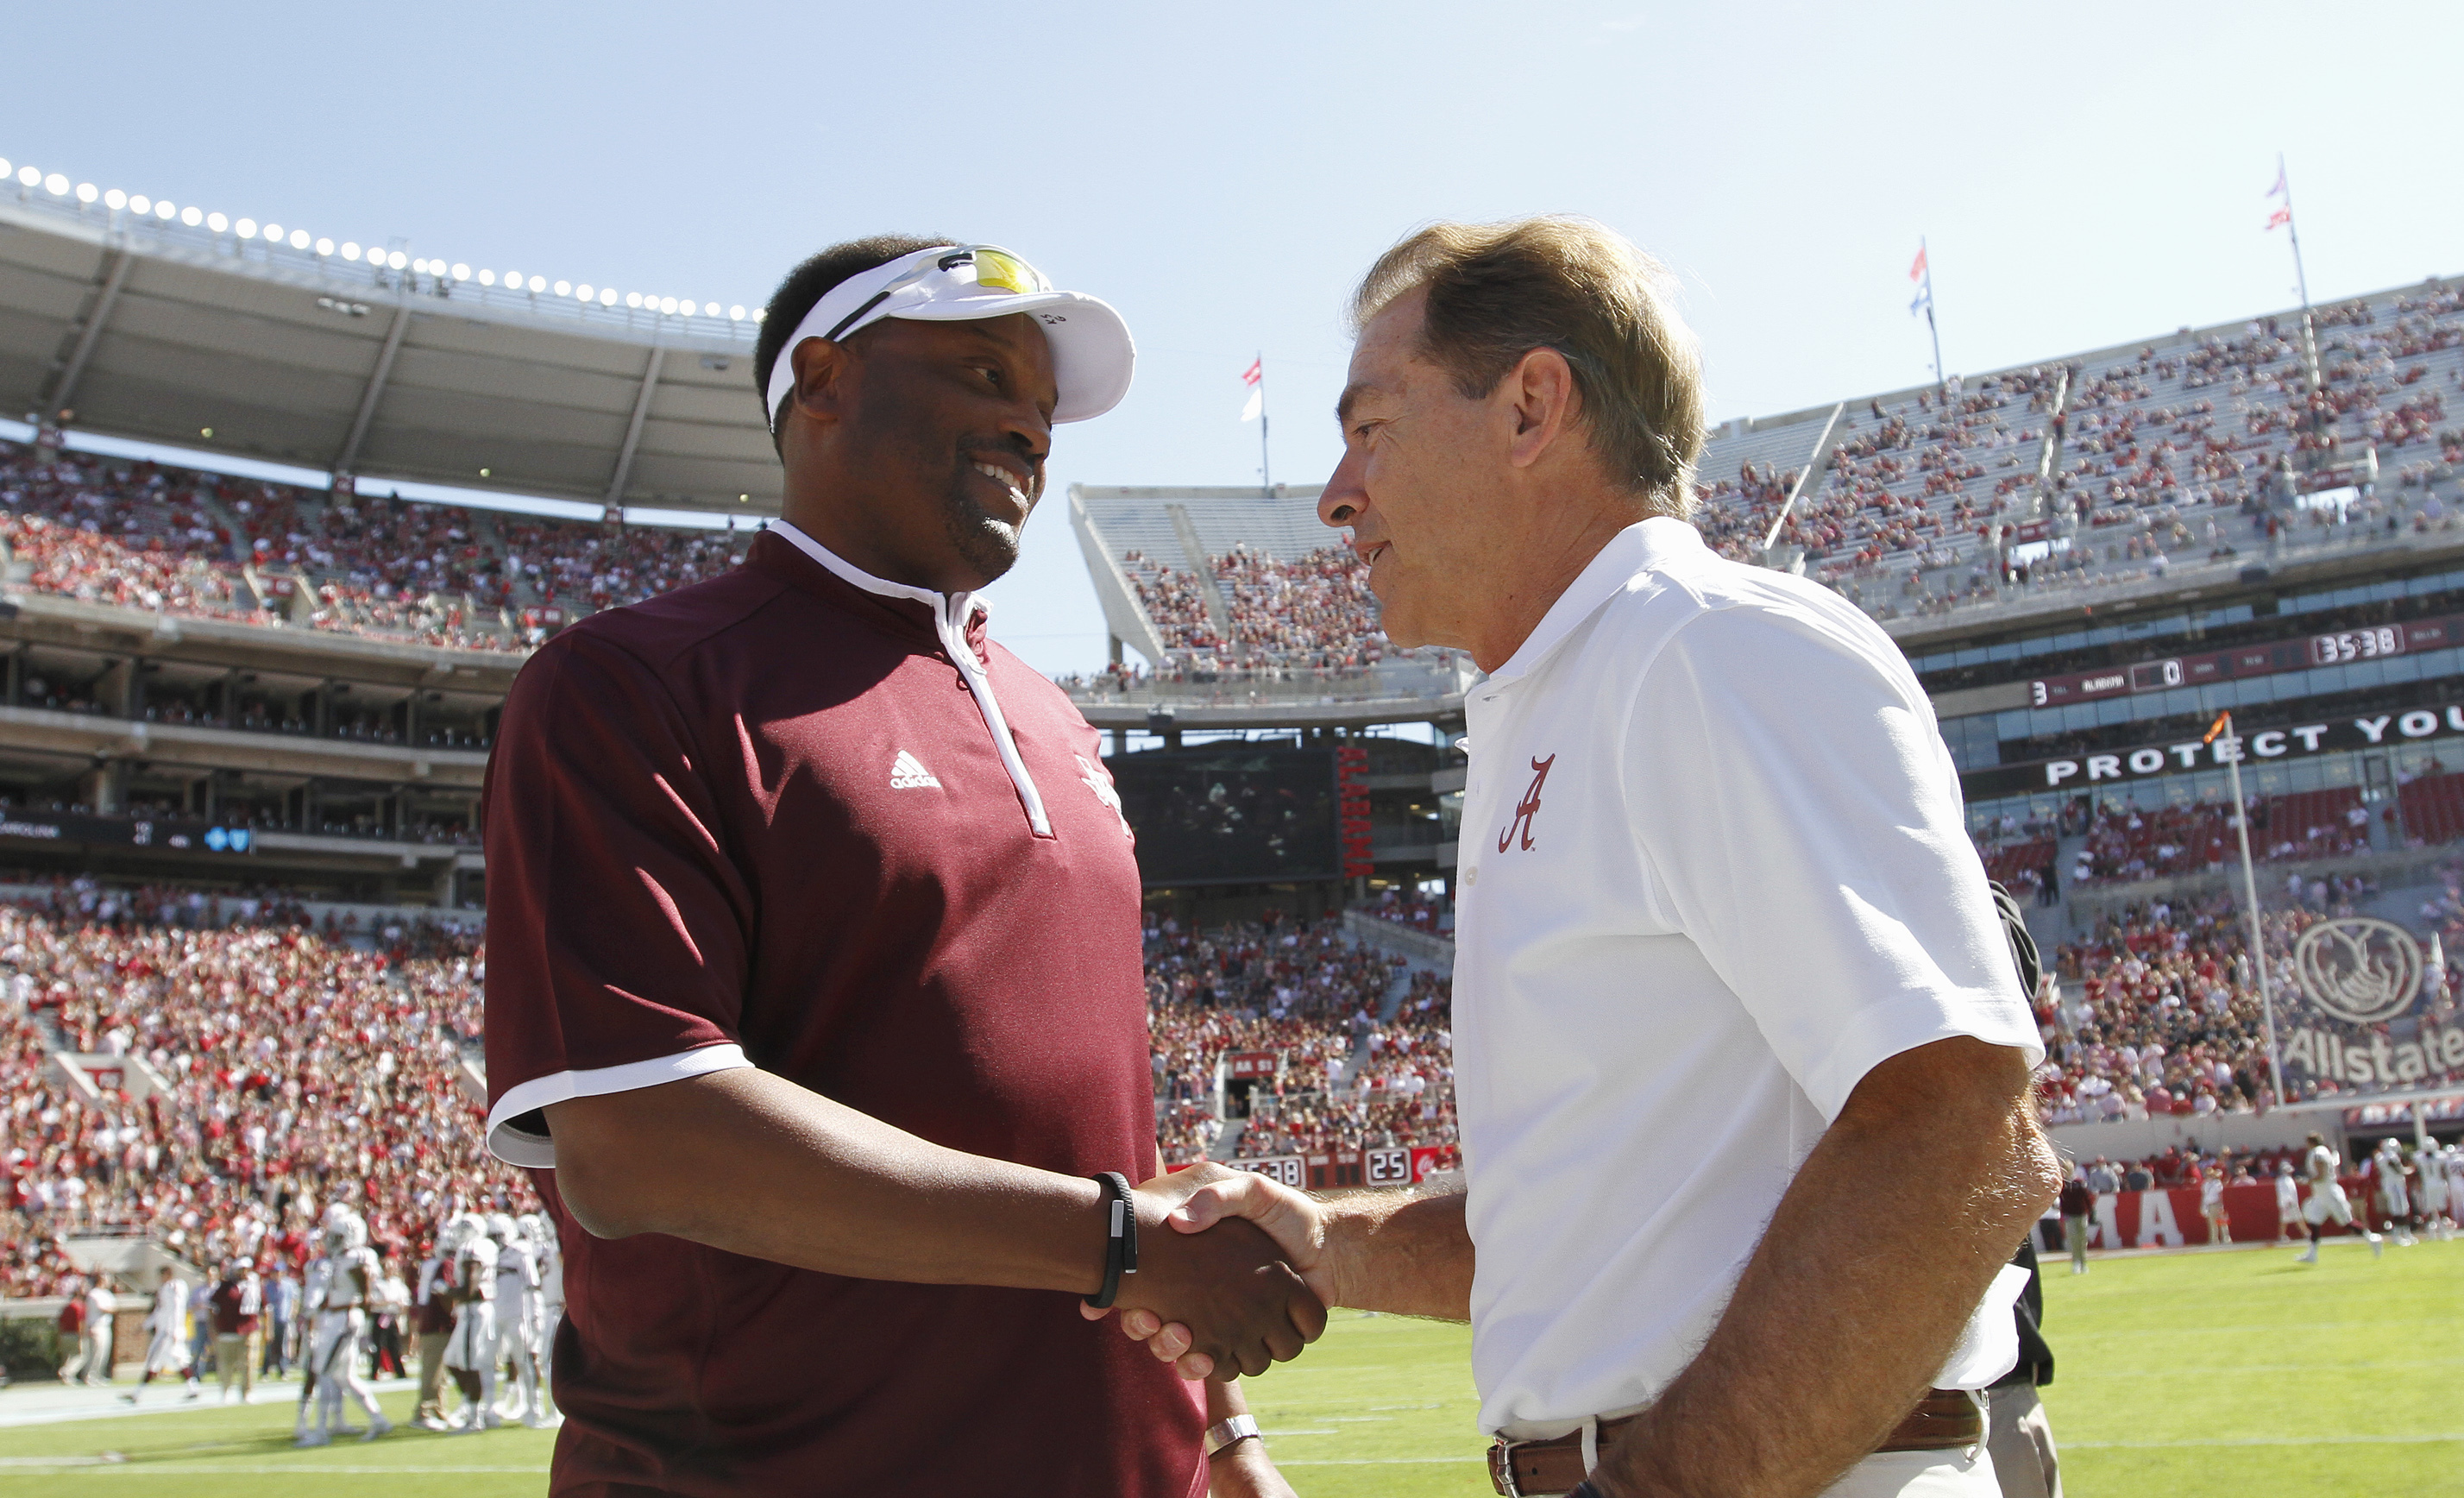 FILE - In this Oct, 18, 2014, file photo, Texas A&M head coach Kevin Sumlin, left, and Alabama head coach Nick Saban shake hands before an NCAA college football game in Tuscaloosa, Ala. The SEC West could be all but decided this Saturday. The leader will